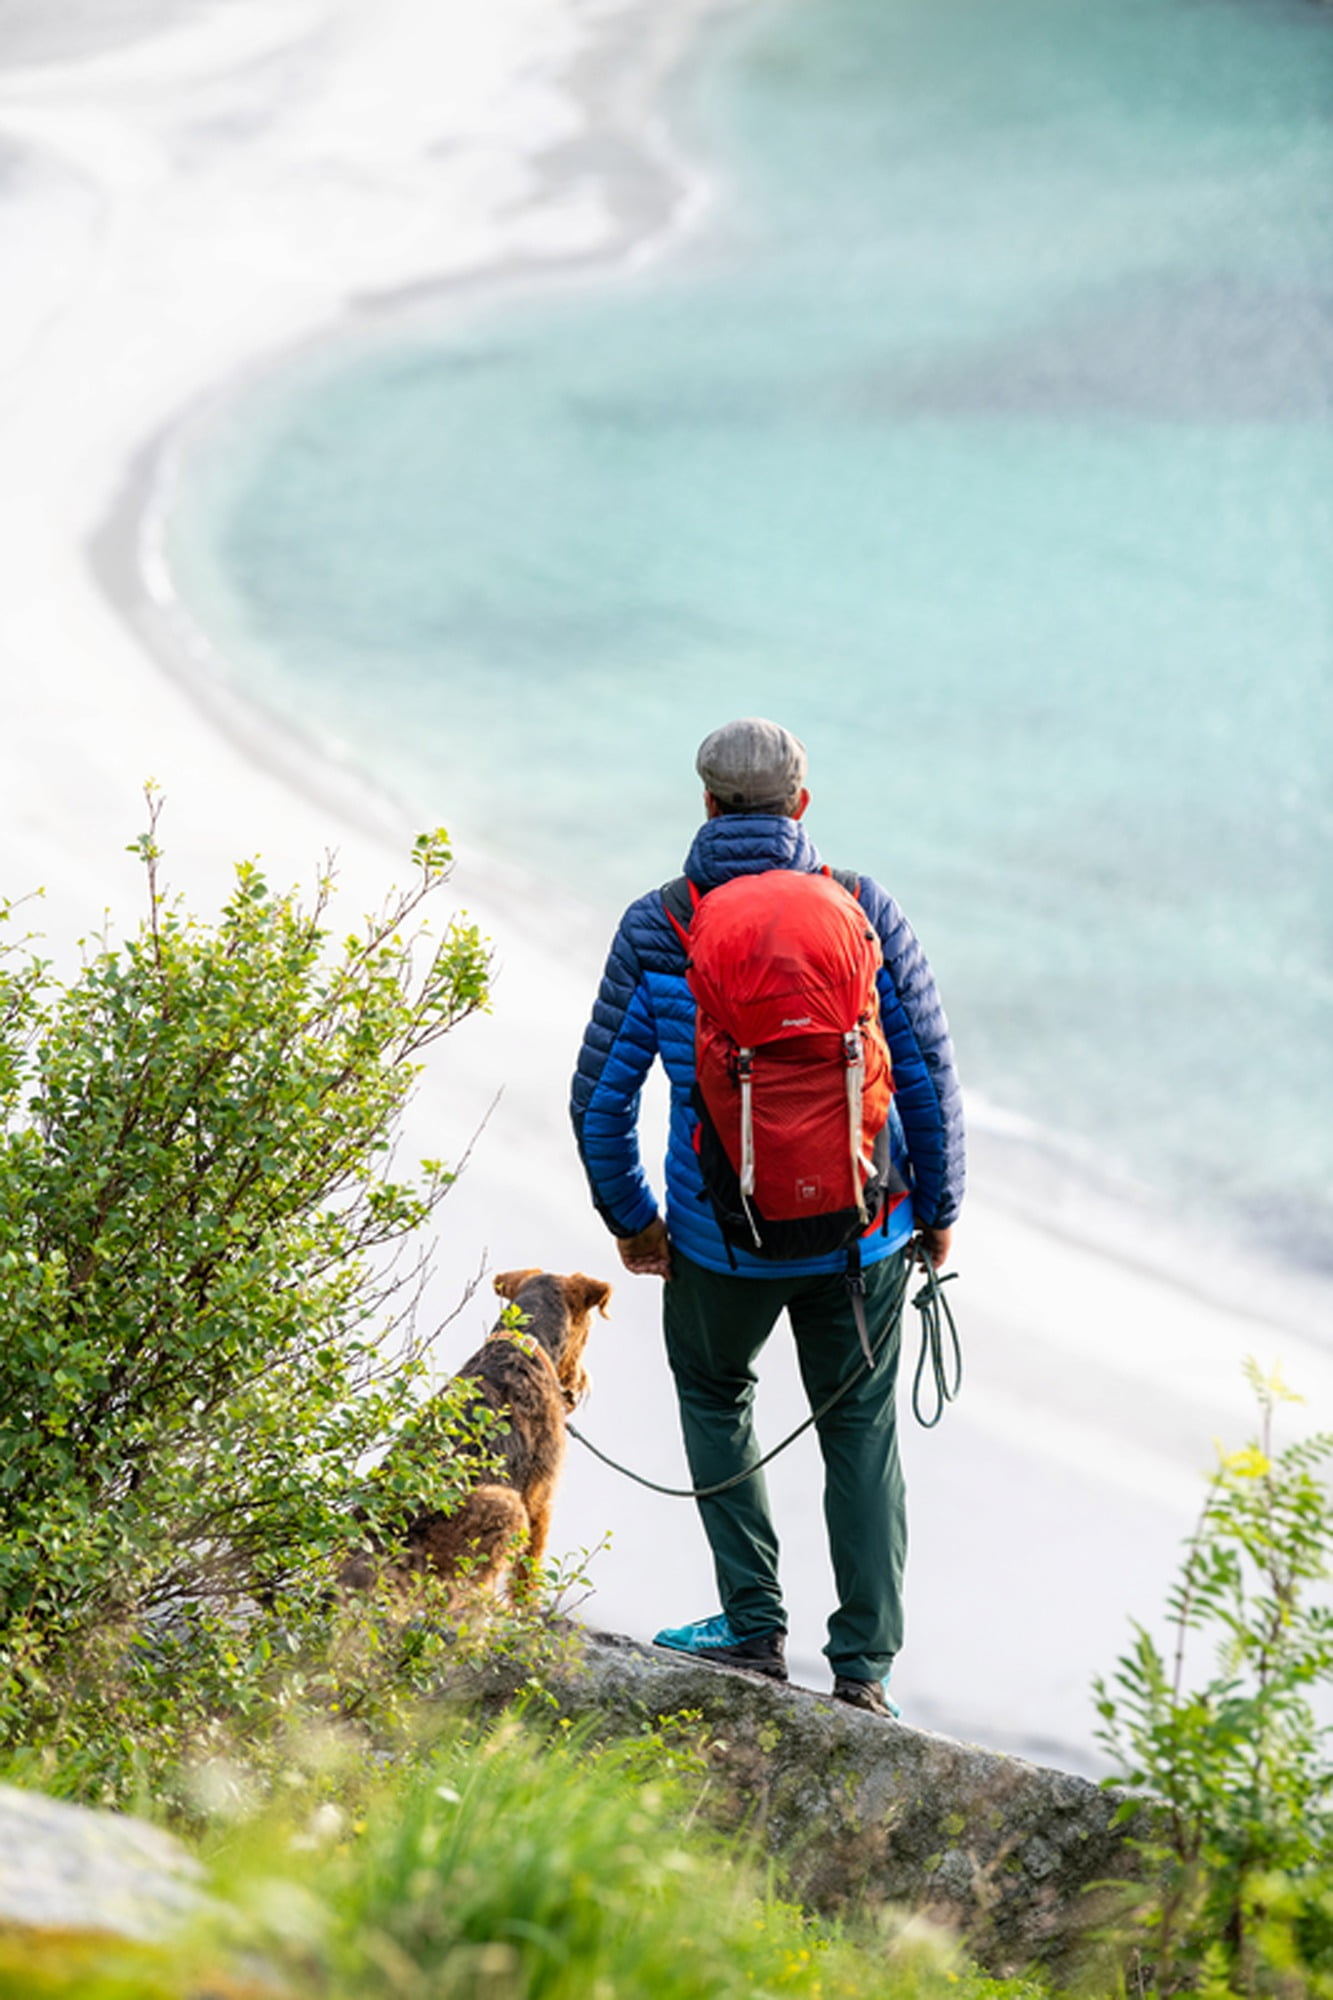 People in nature, Luggage and bags, Body of water, Plant, Dog, Carnivore, Bag, Grass, Backpack